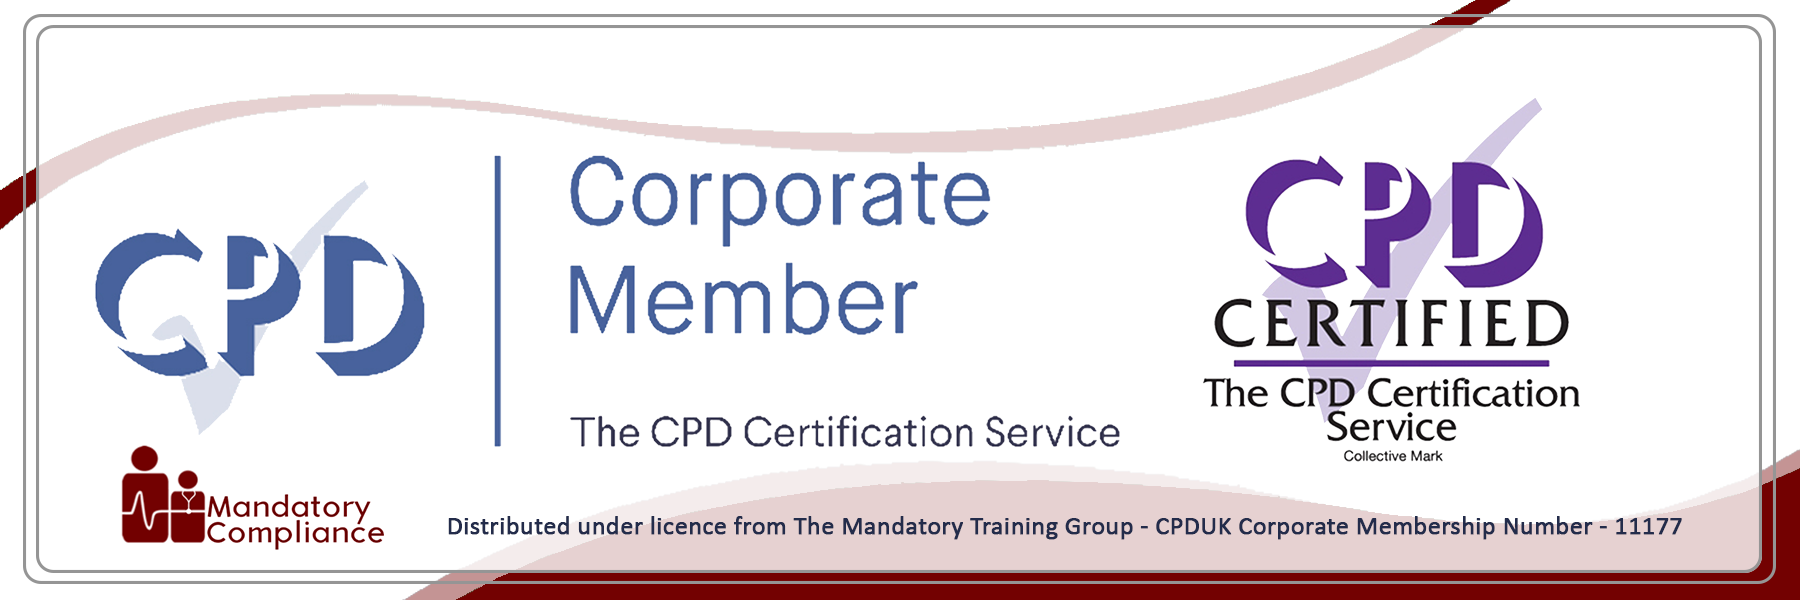 Call Centre - Online Course - The MAndatory Compliance UK -